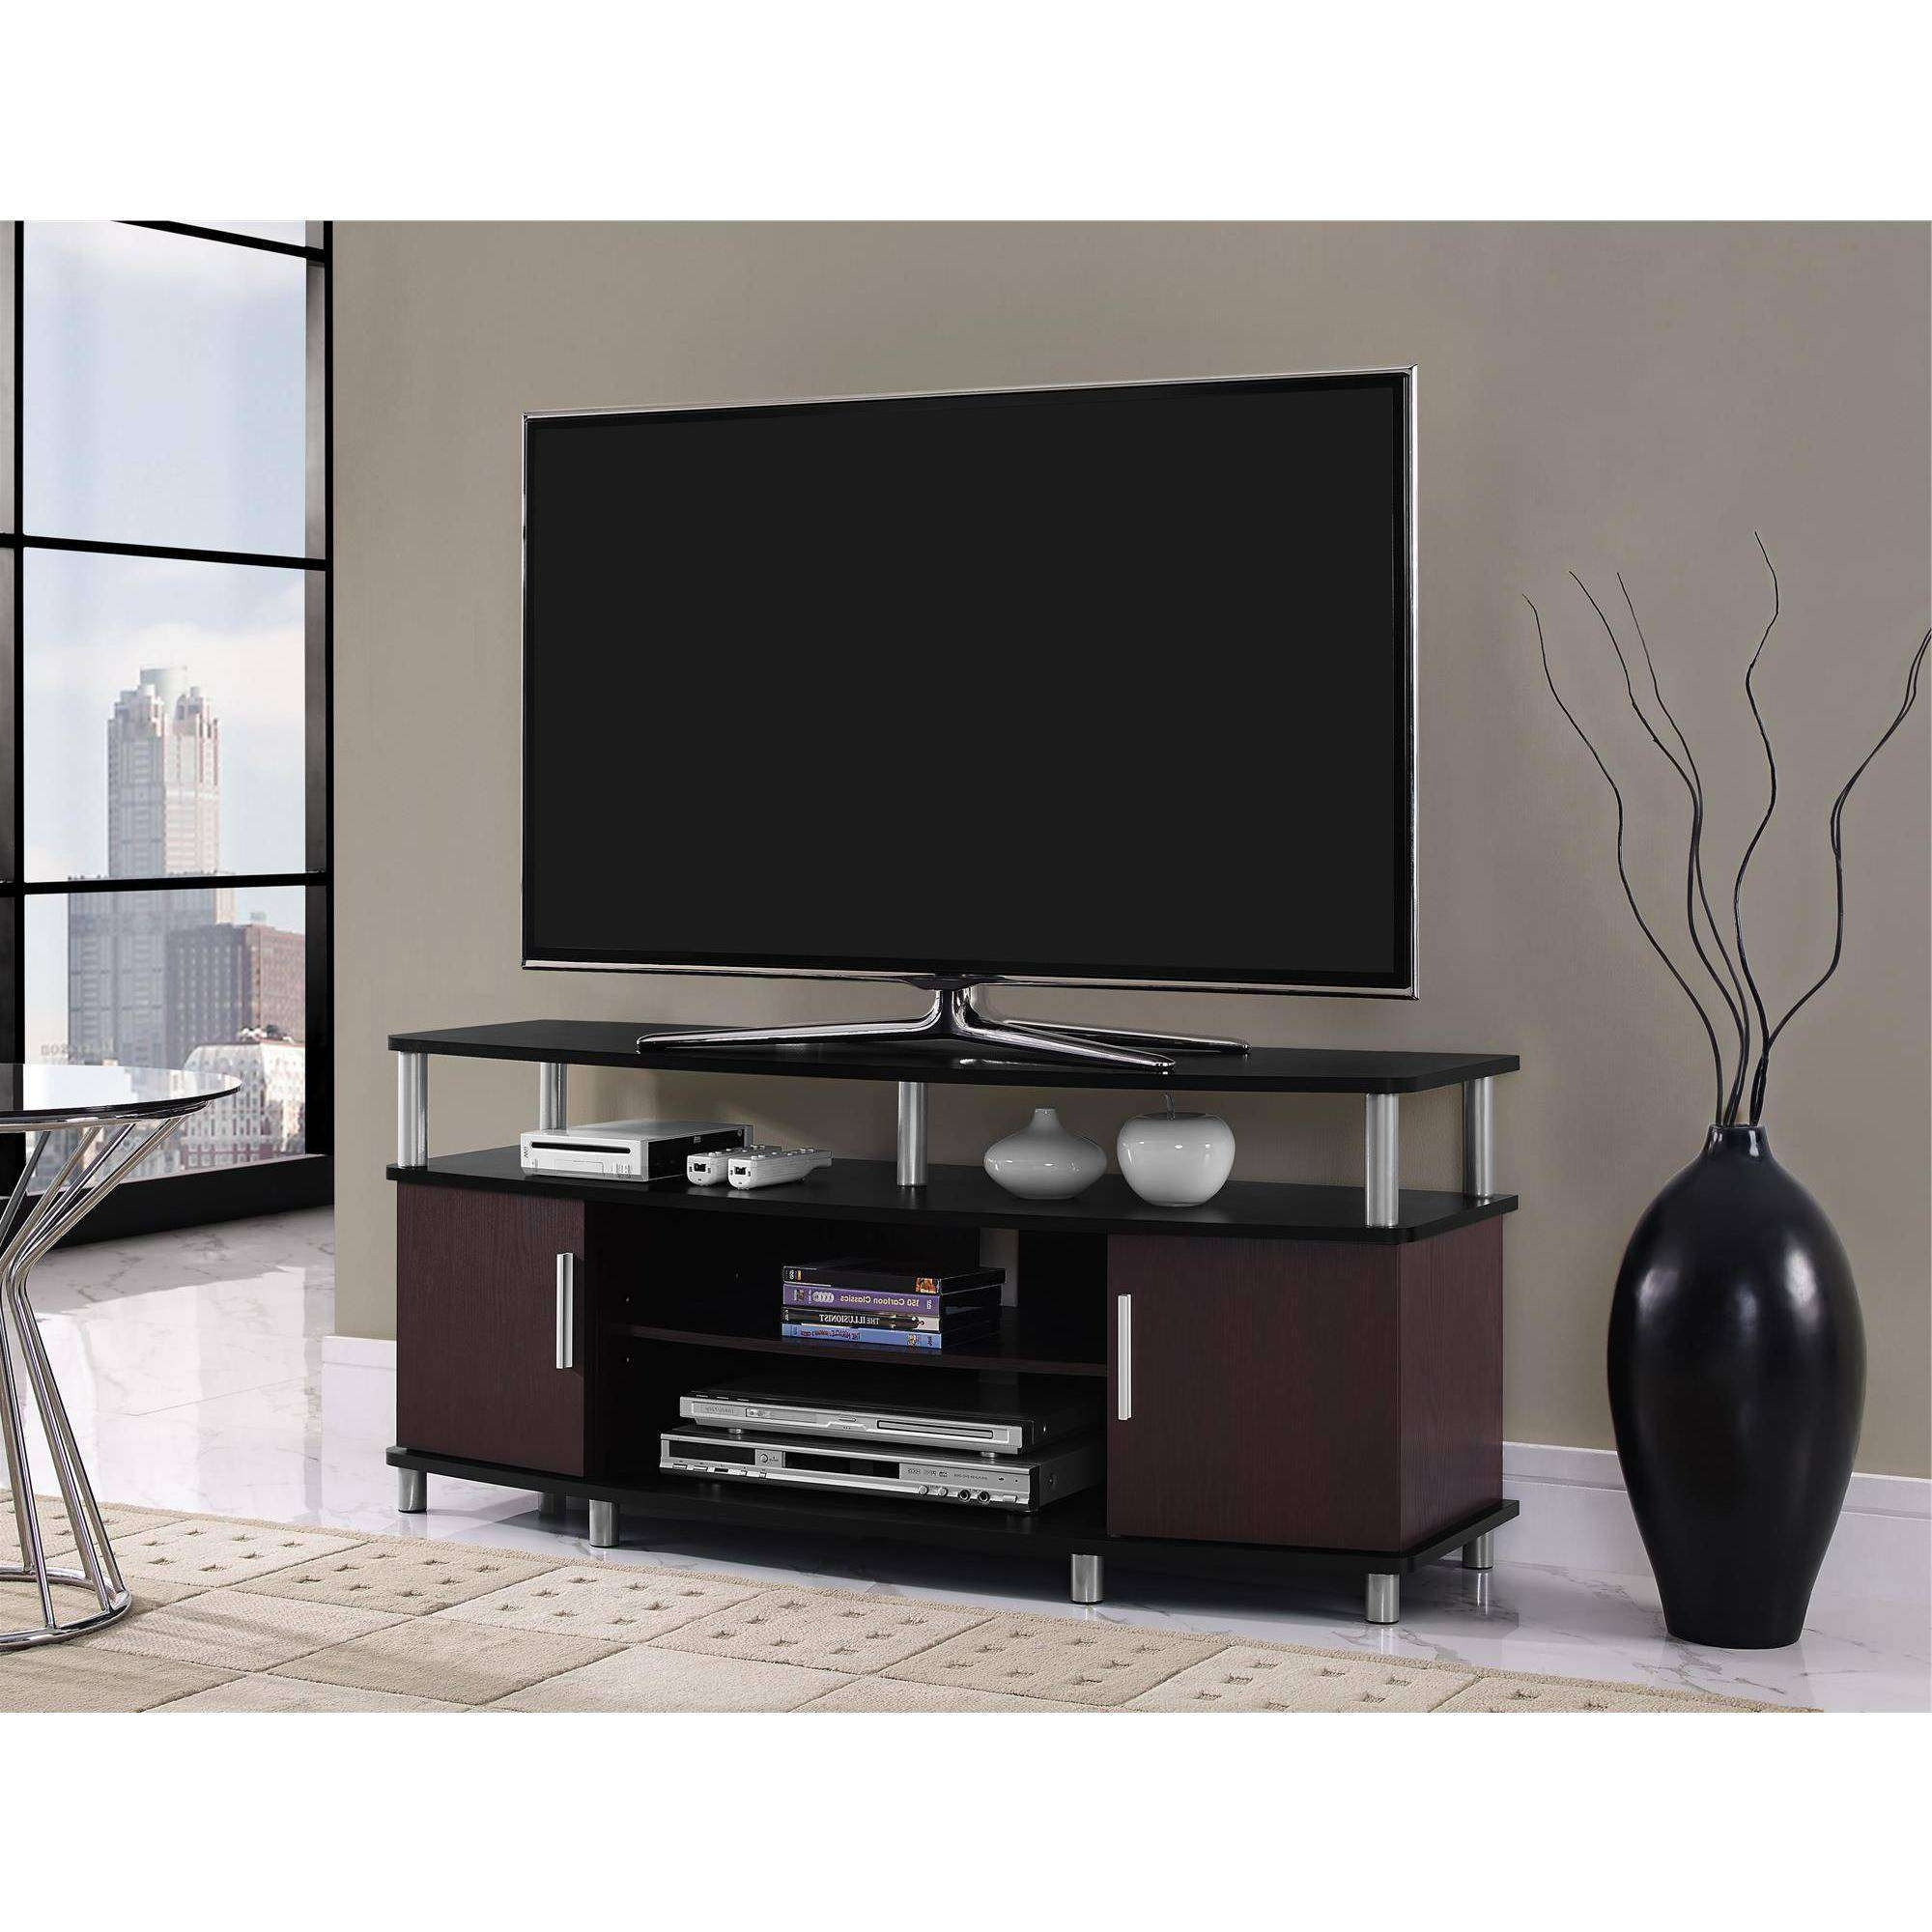 Tv Stands & Entertainment Centers – Walmart Regarding Wooden Tv Stands And Cabinets (View 3 of 15)